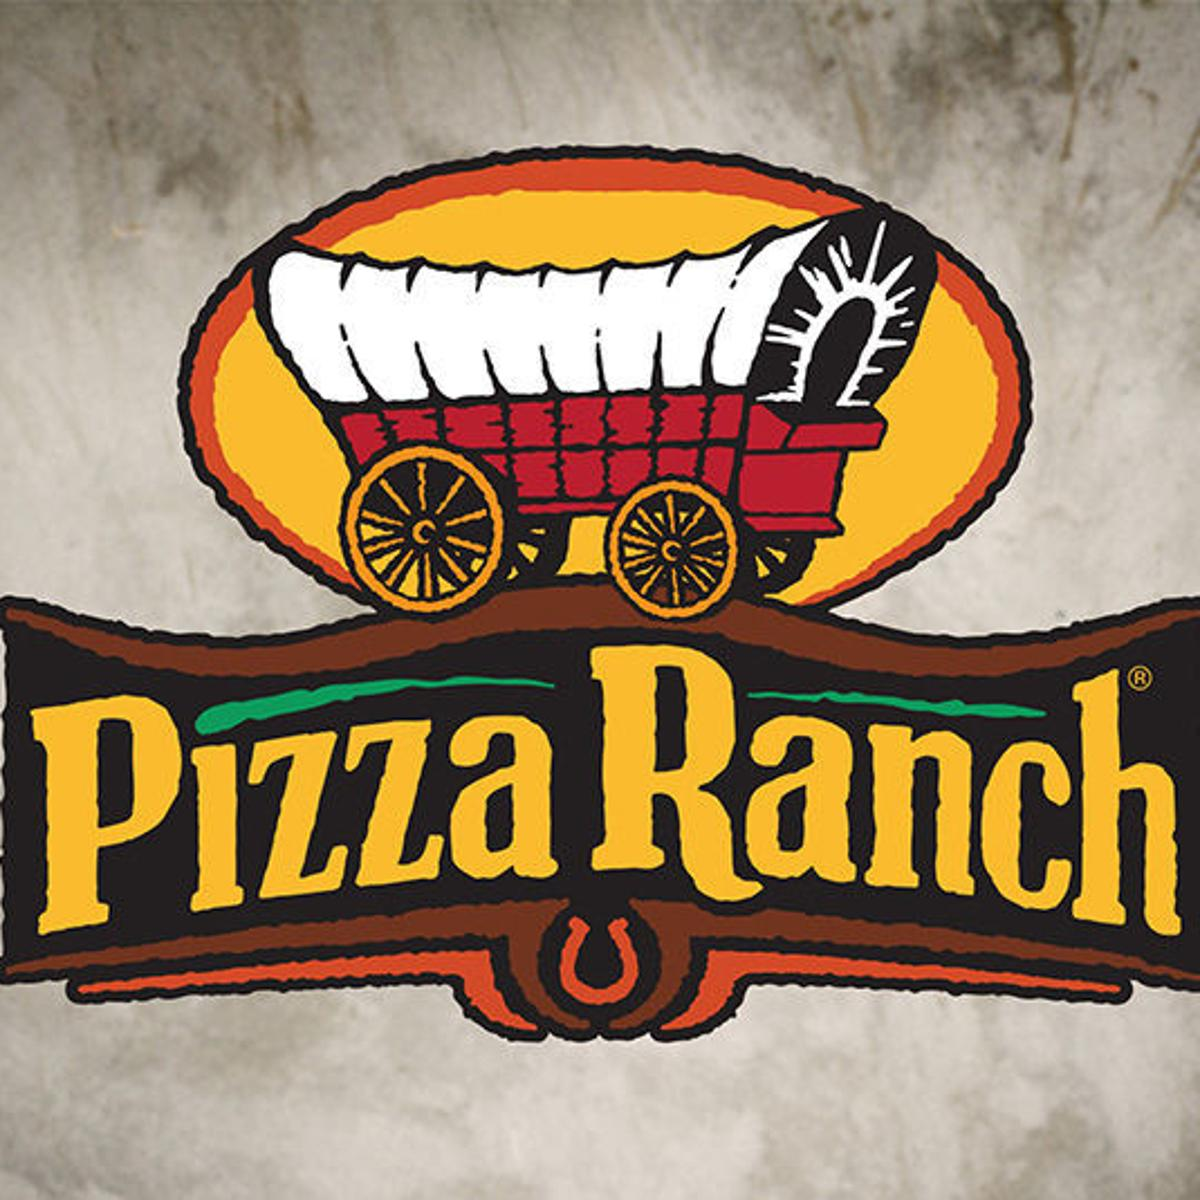 Pizza Ranch to open in Grand Island.